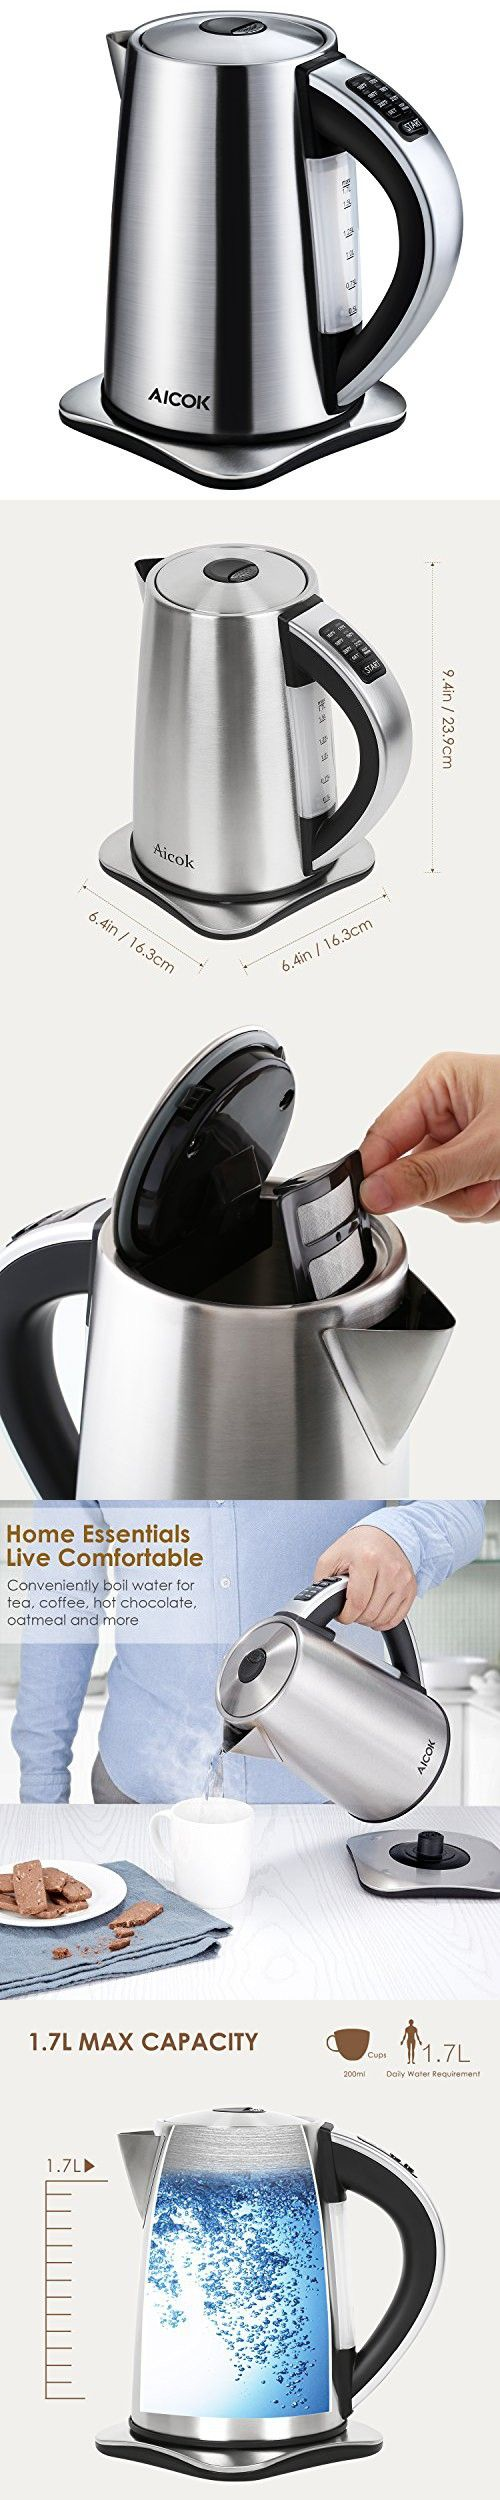 Electric Kettle Aicok 6-Temperature Control and Keep Warm Function ...